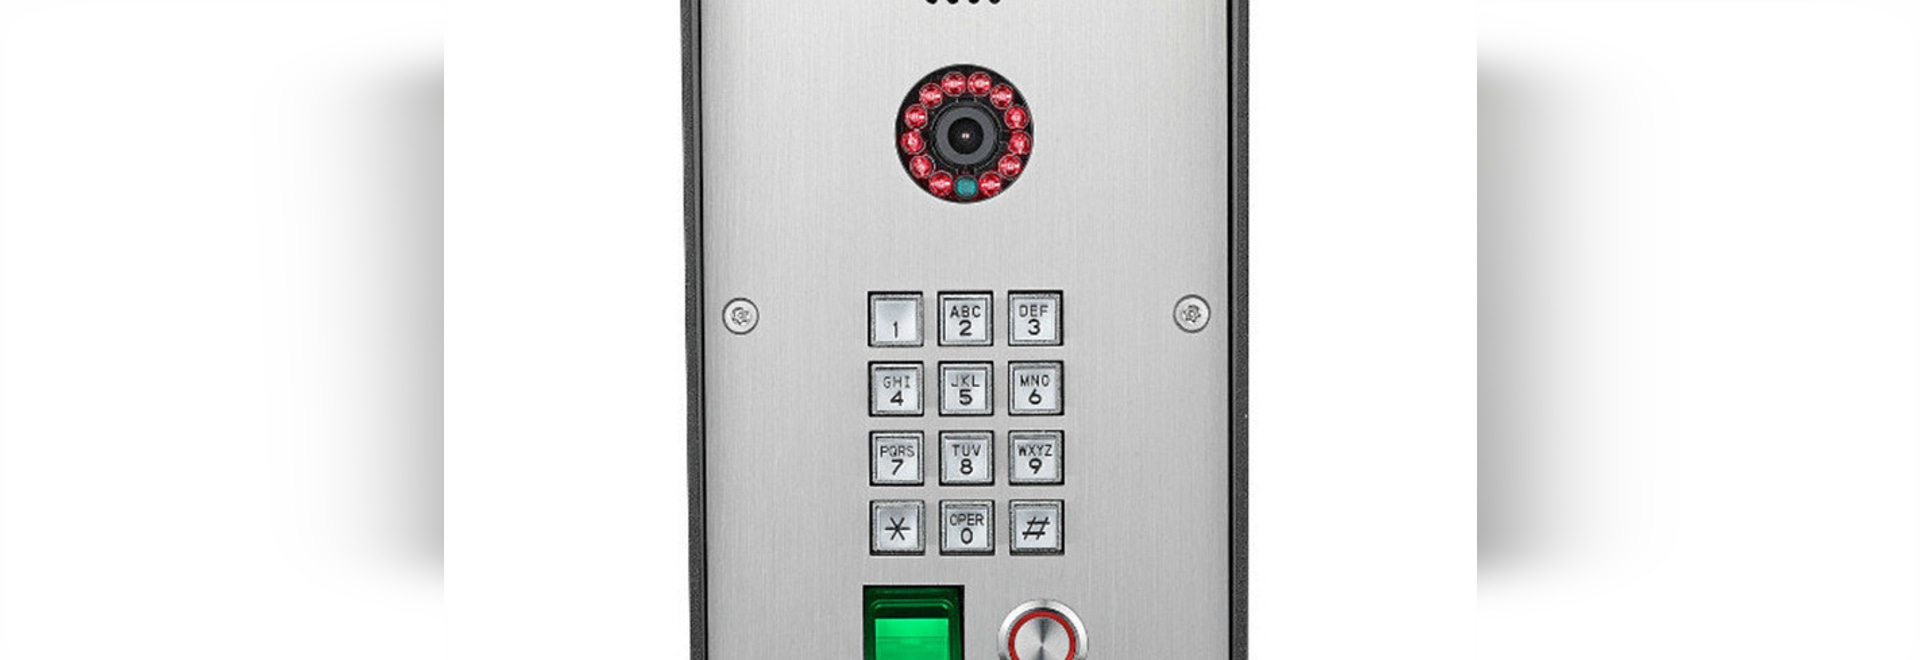 Intercom with Stainless steel sip doorphone audio intercom with finger printing  to open the door for home security